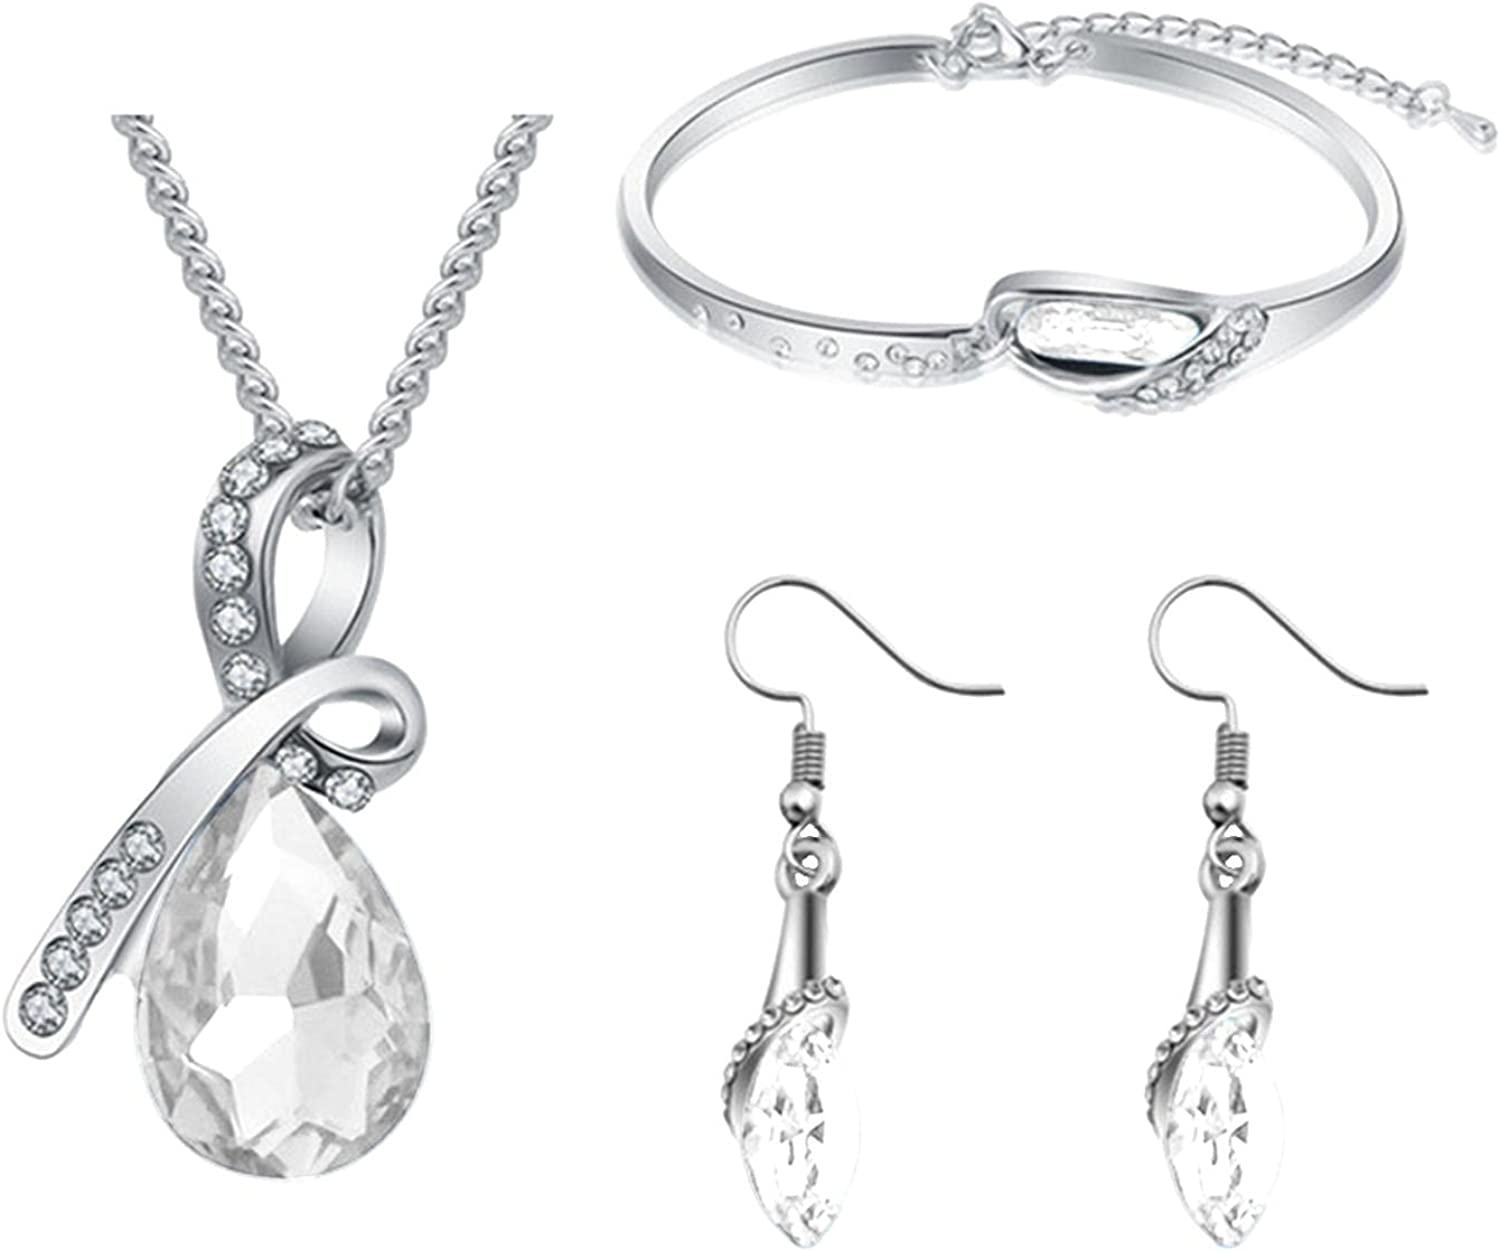 Women's Red Jewelry Set Personality Style Neckla Crystal Special sale item Classic El Paso Mall